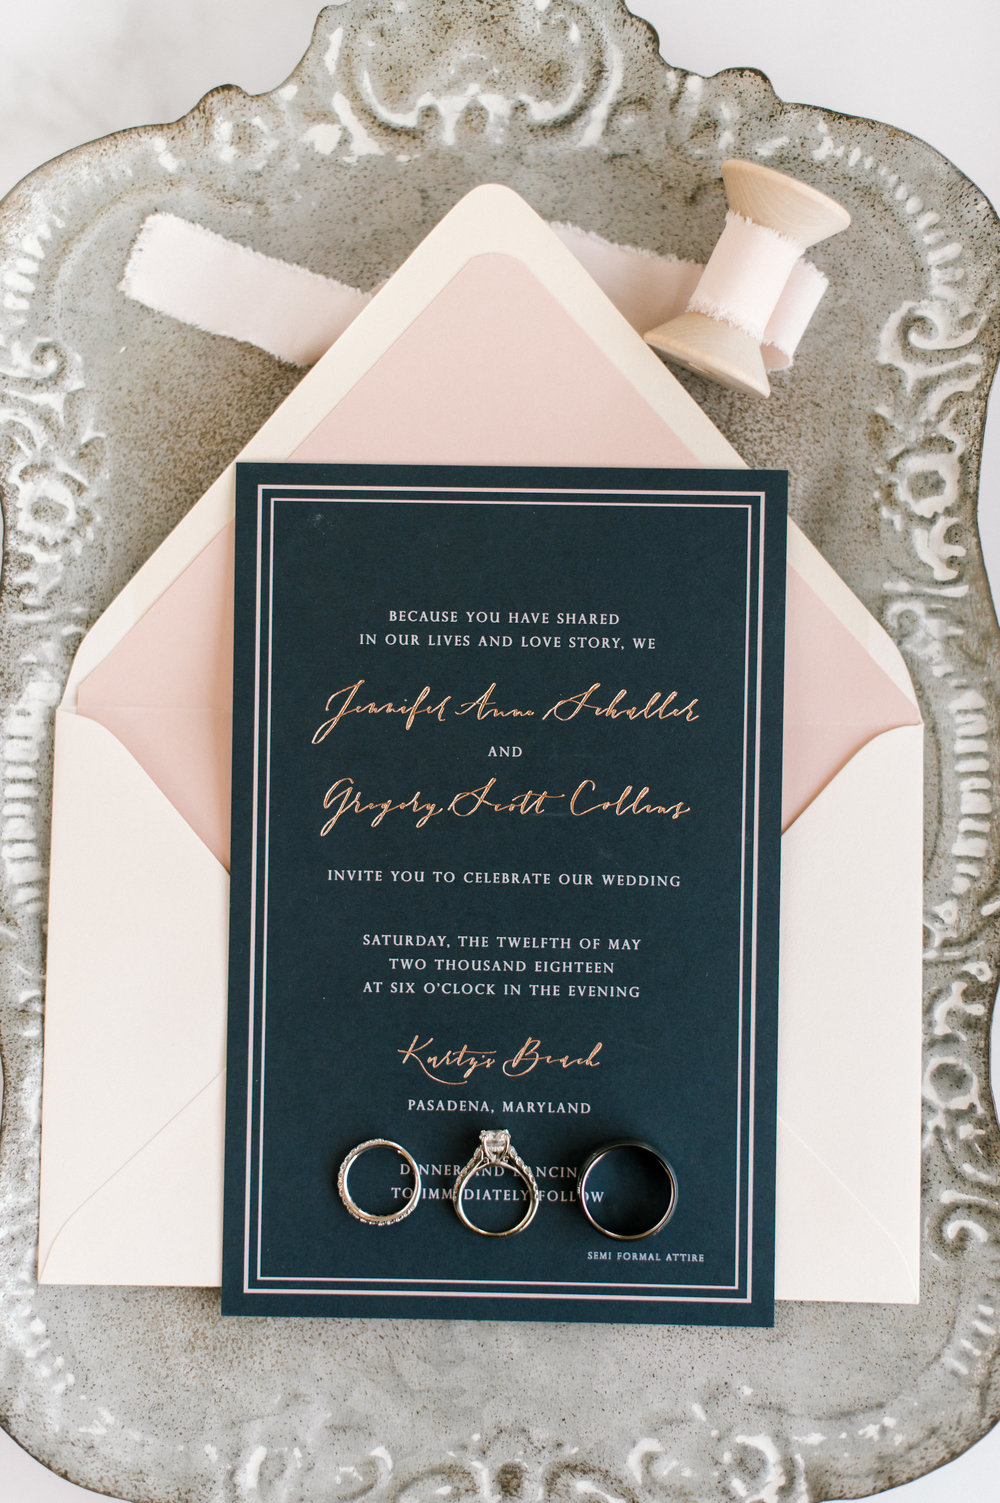 rose-gold-wedding-invitation-third-clover-a-er-.jpg